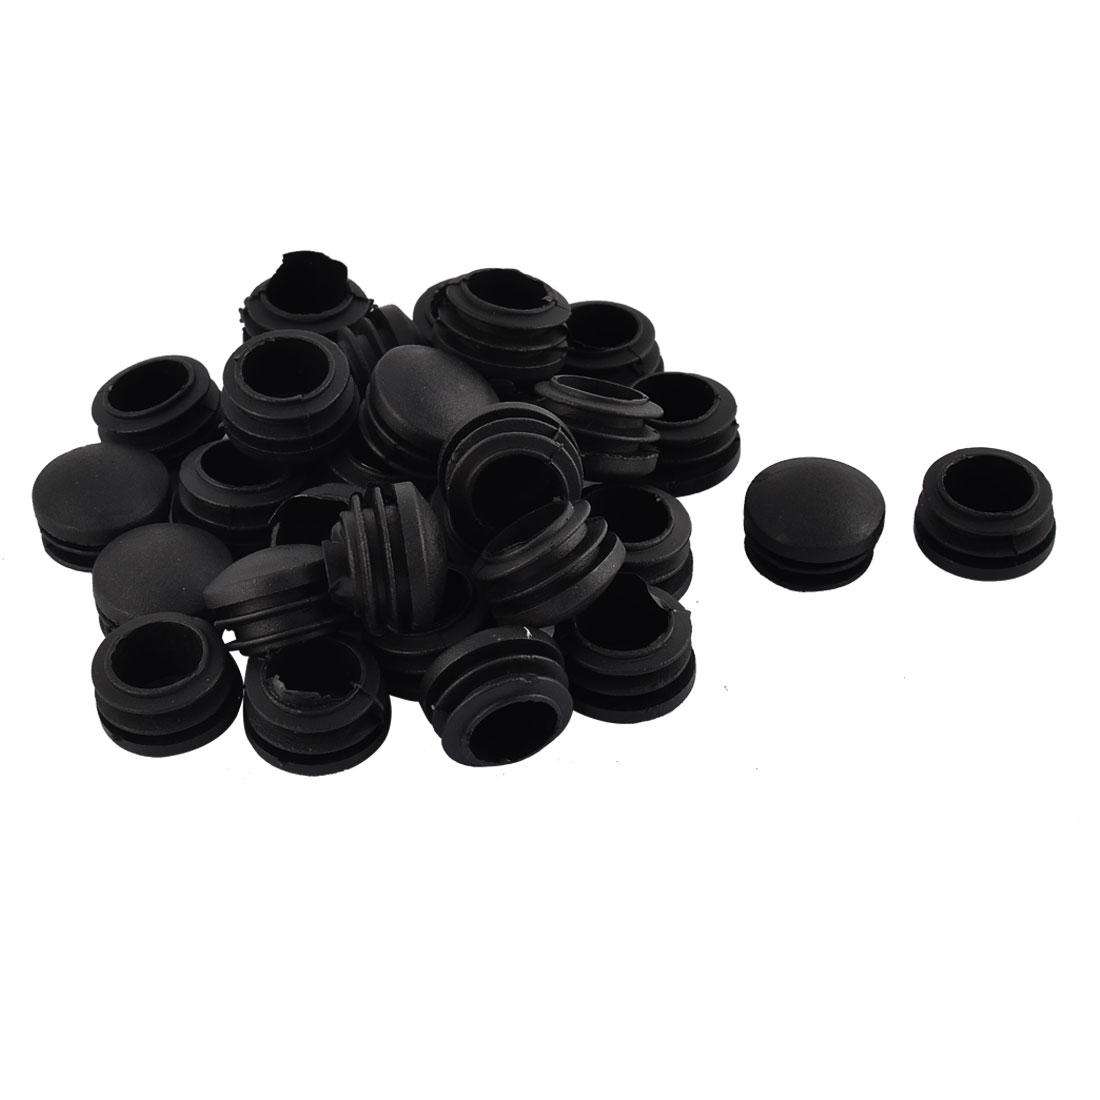 Furniture Table Chair Legs Plastic Round Head Tube Pipe Insert Cap Cover Black 25mm Dia 30pcs